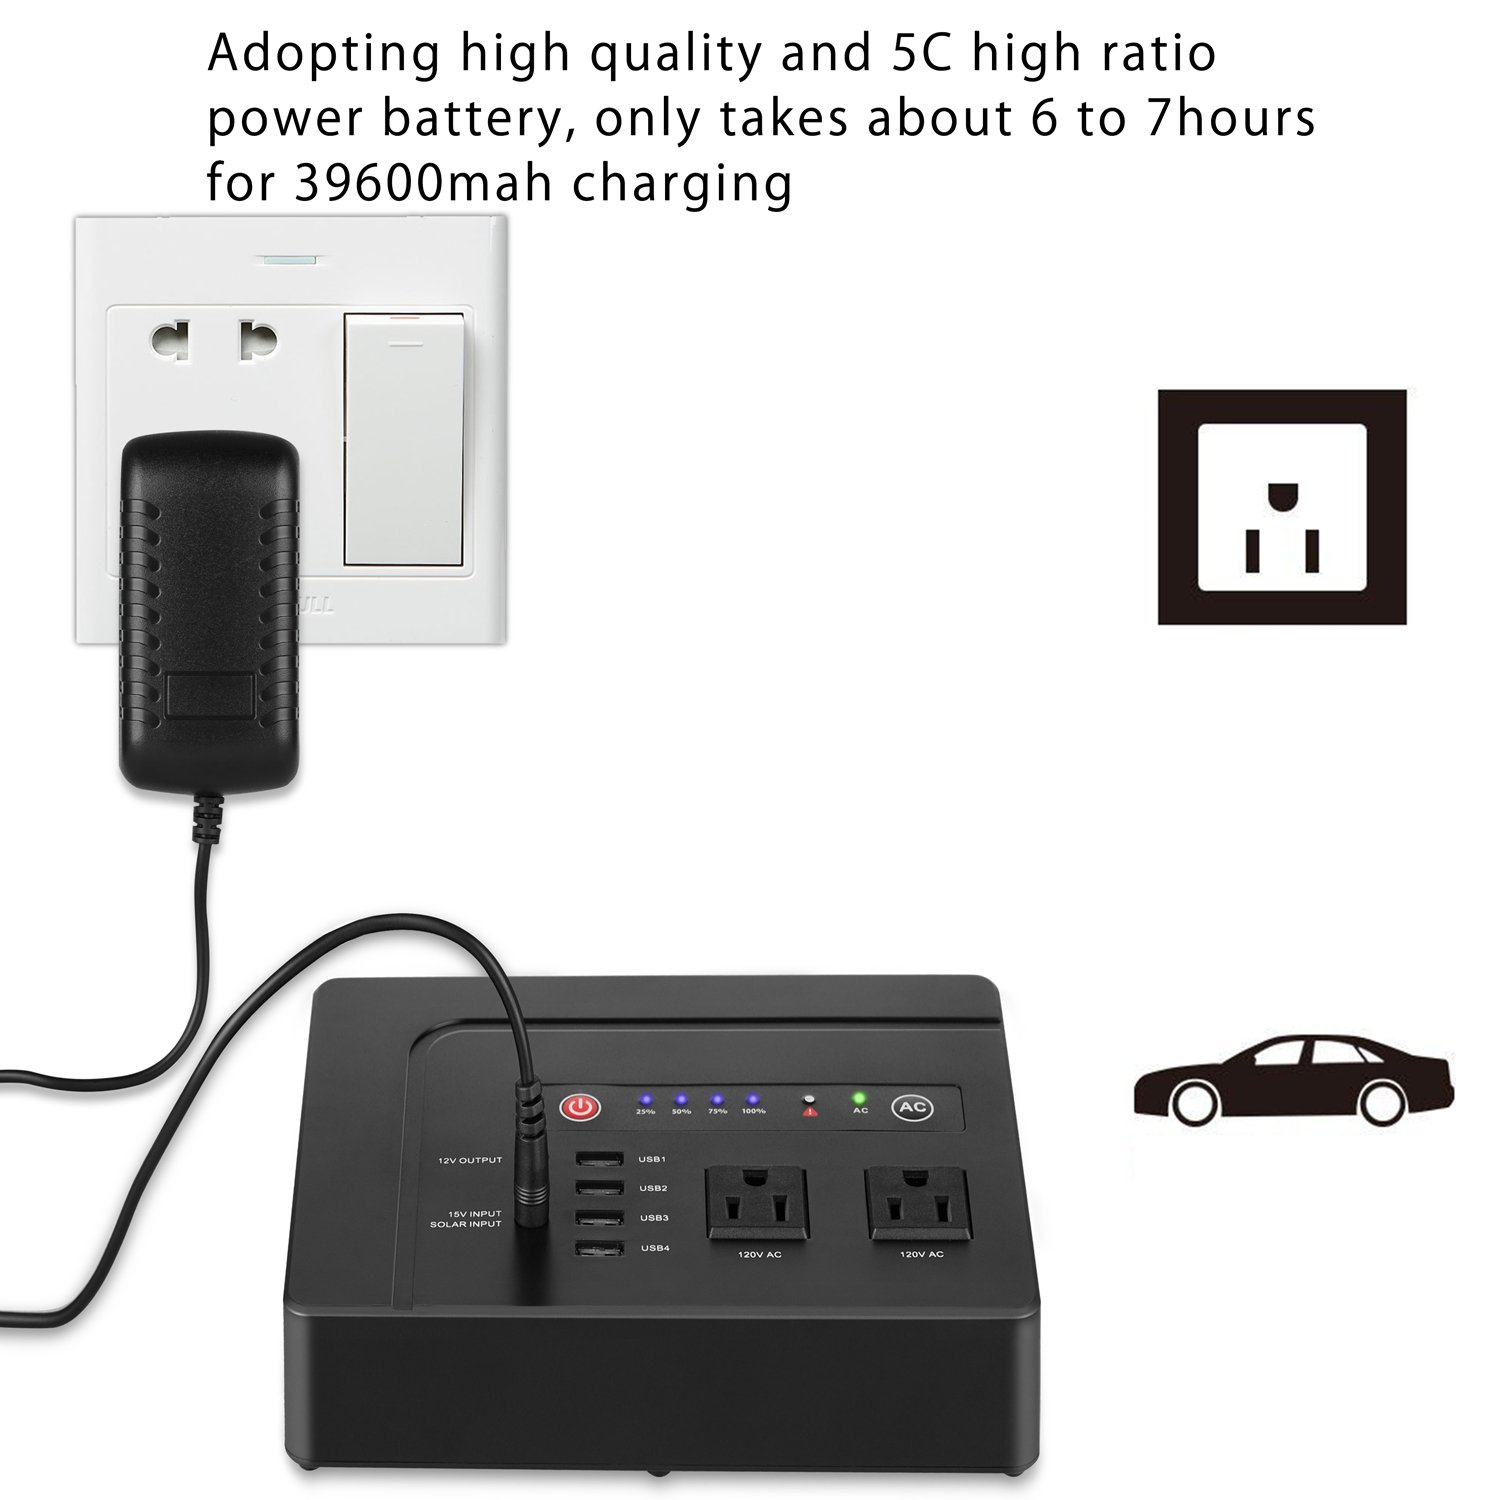 KRTOTAI AC Portable Power Bank High Capacity with Fast Charger 12V DC socket&15v/2A DC Input & 4 USB Ports use for Laptops, CAR Refrigerators,Pedestal Fans,Tablets,Smart phones 210Wh/39600mAh (BLACK) by KRTOTAI (Image #5)